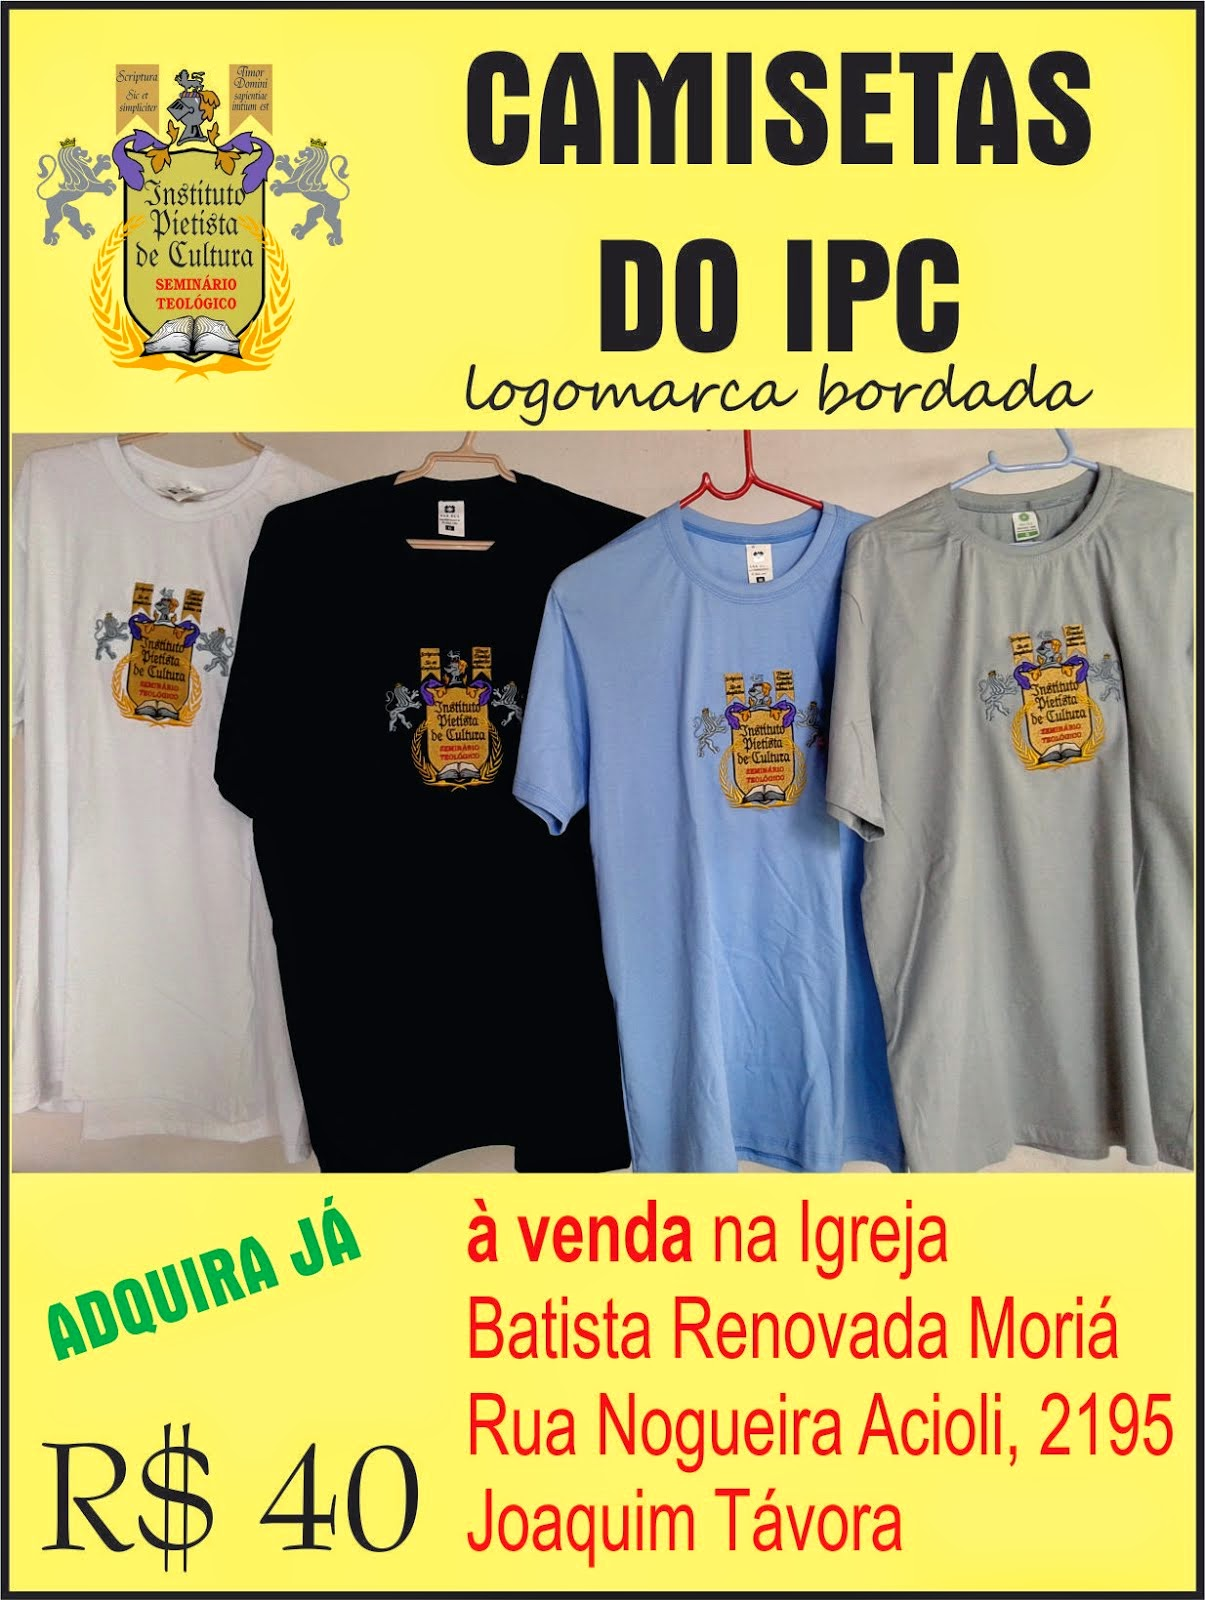 CAMISETAS DO INSTITUTO PIETISTA DE CULTURA